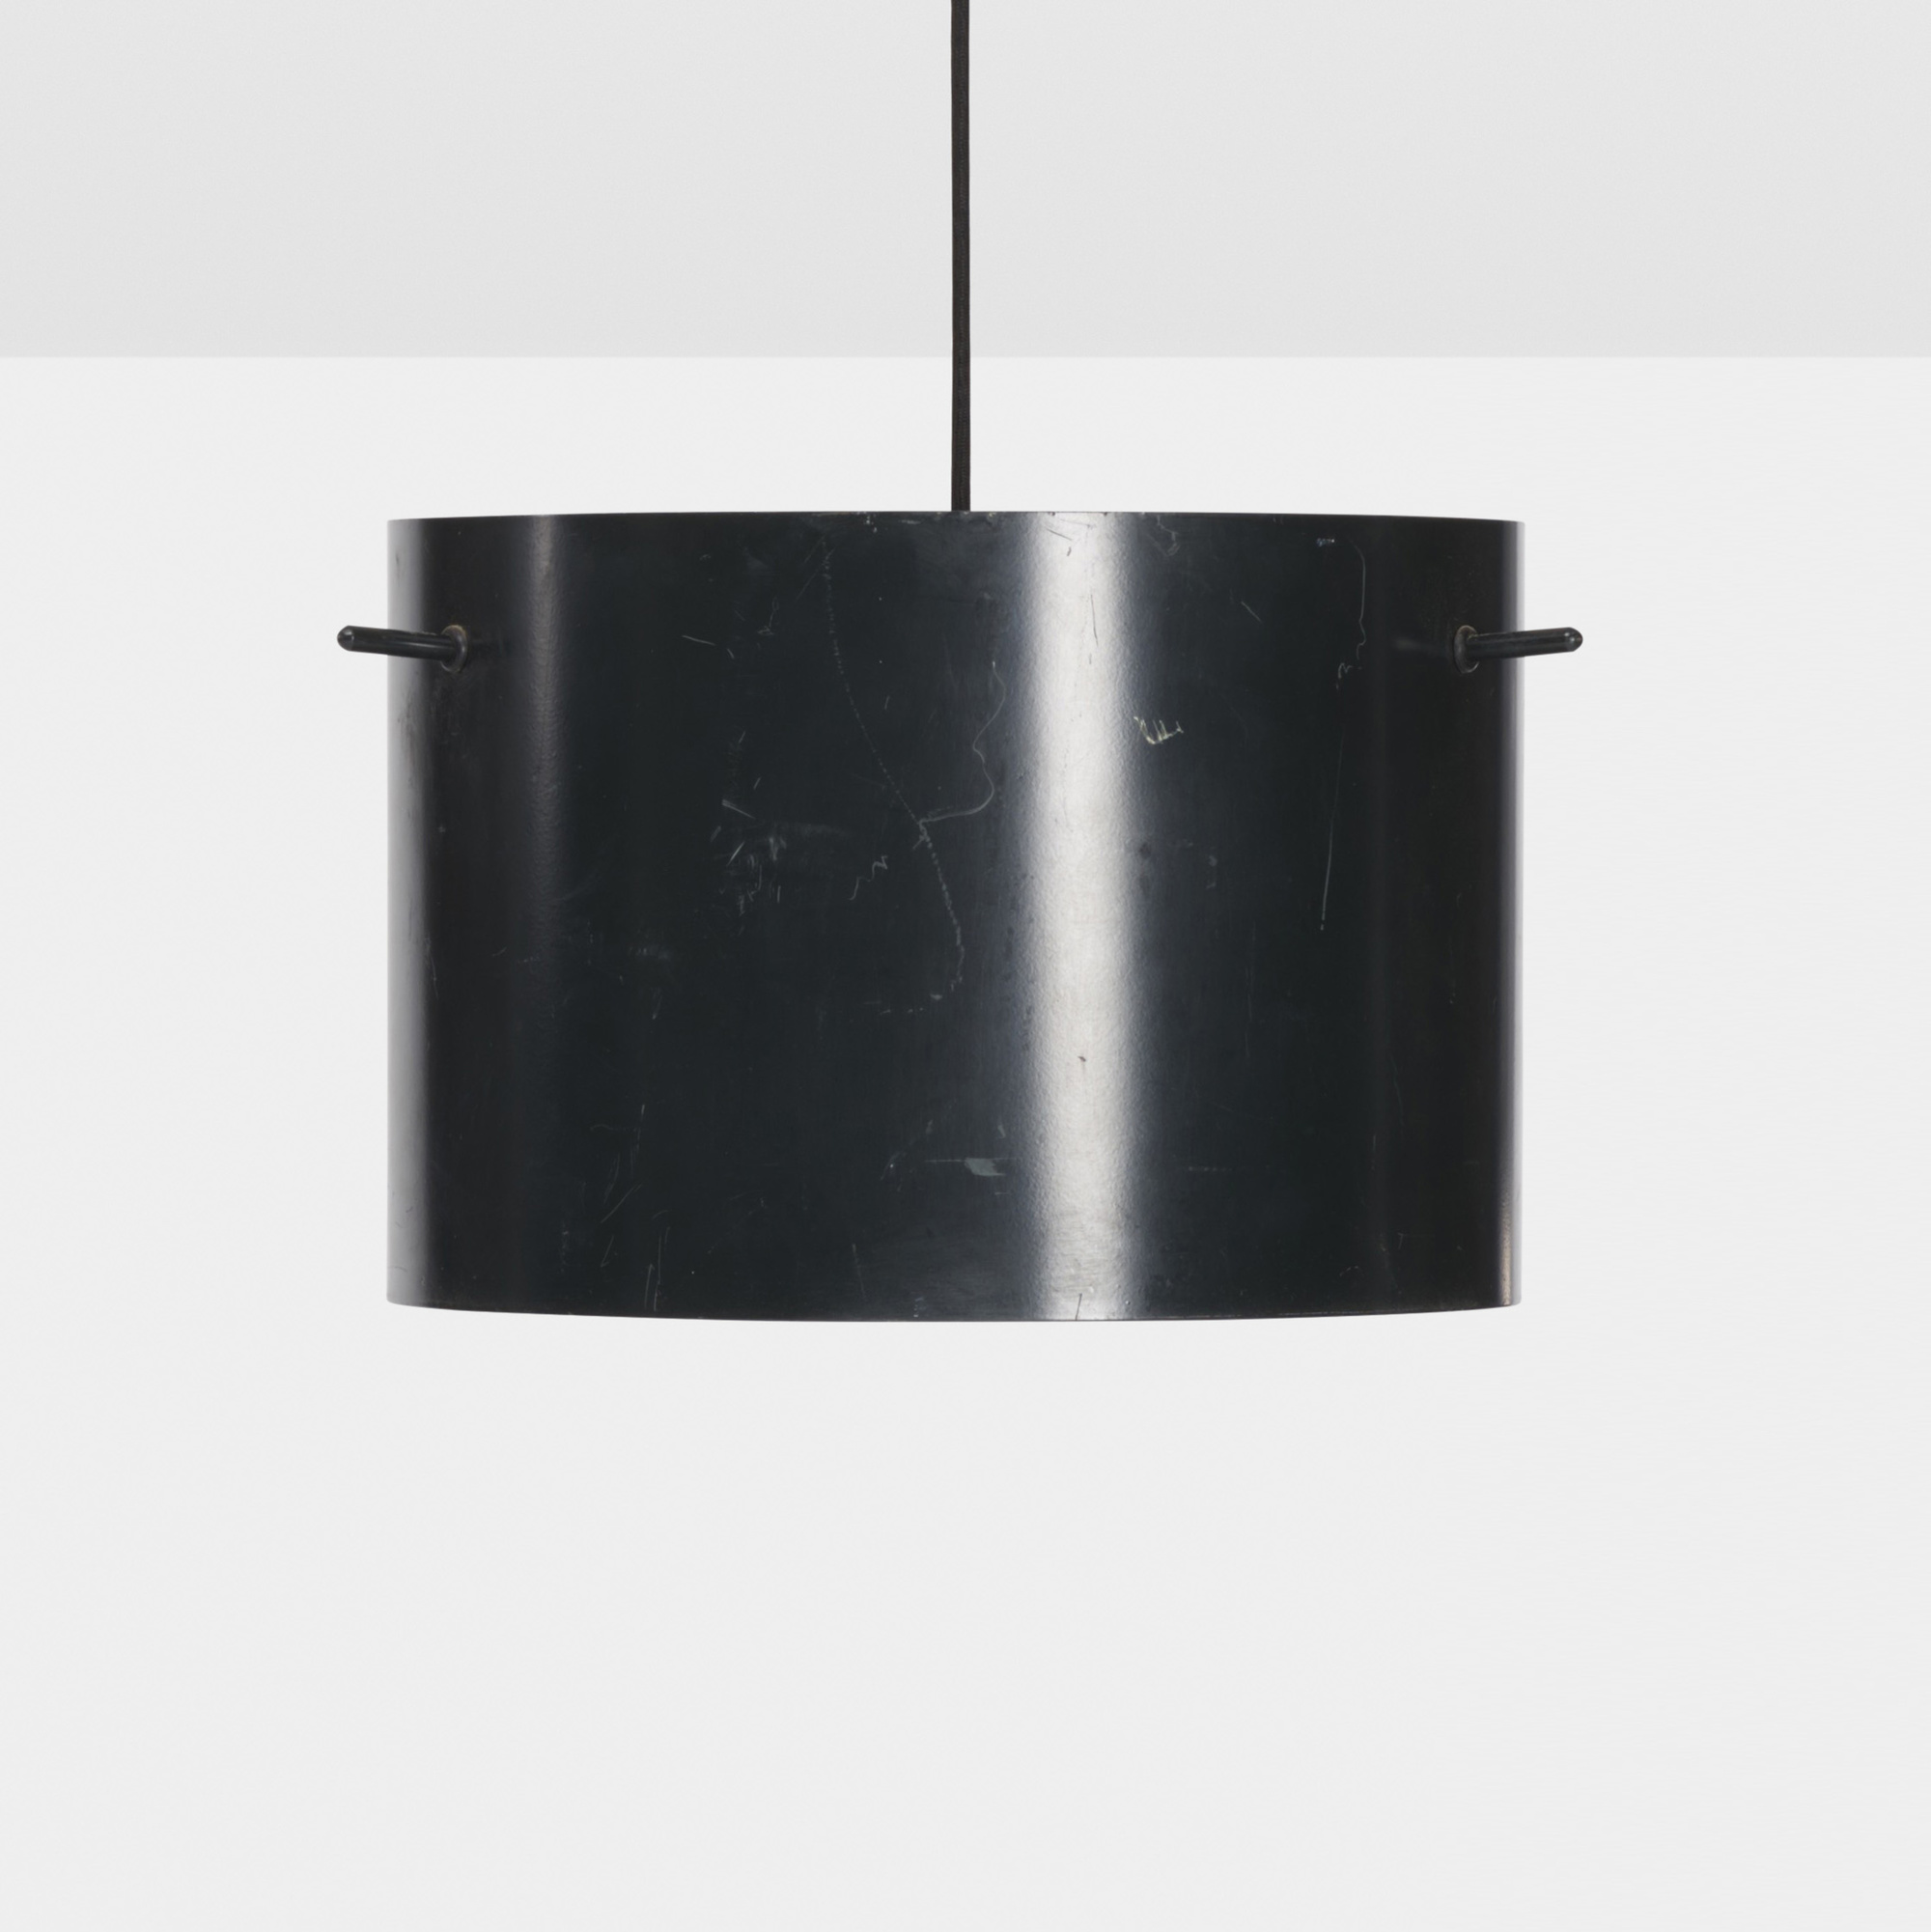 501: Lampas / pendant lamp (1 of 2)